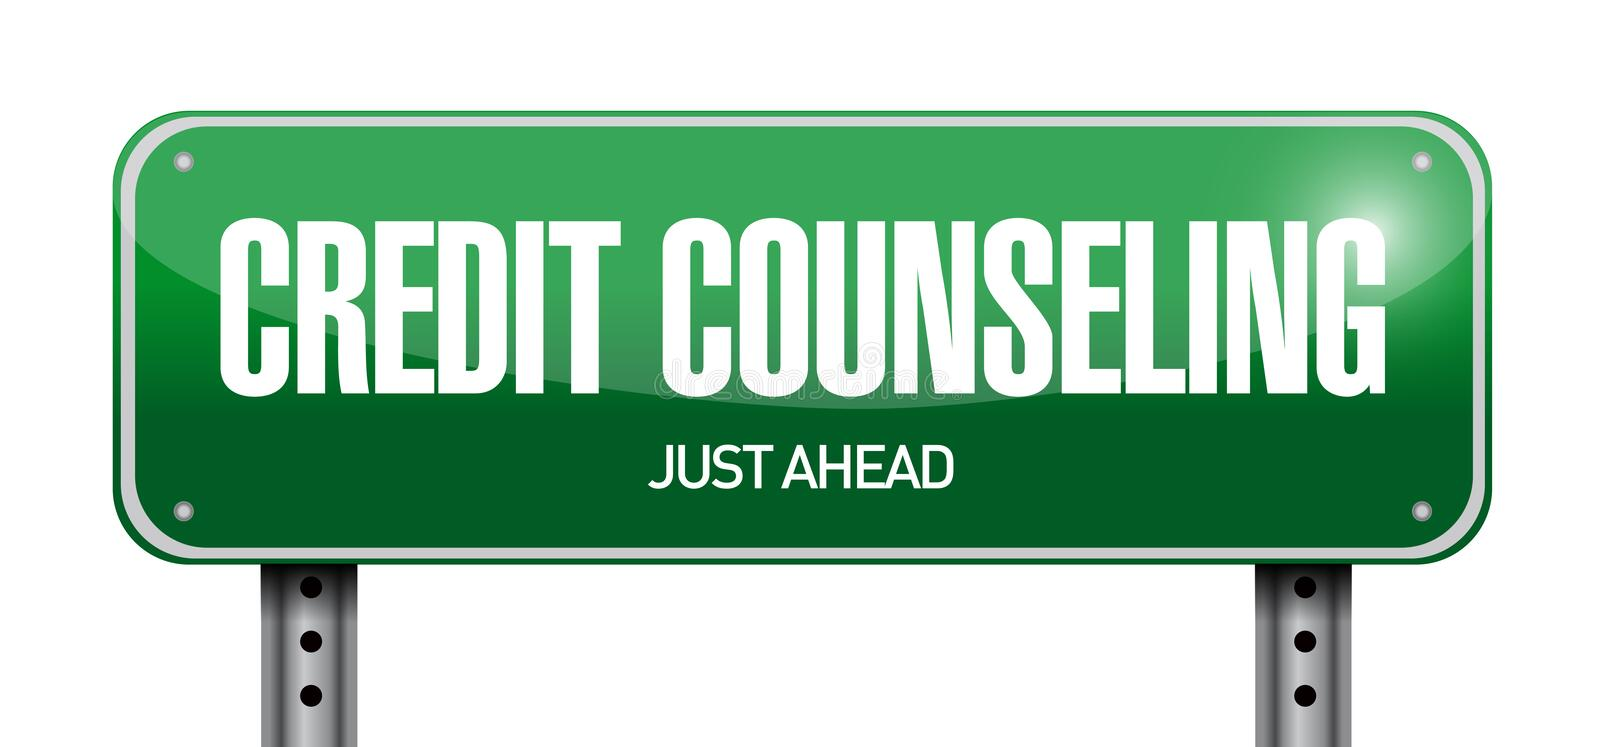 credit counseling sign illustration design stock photos